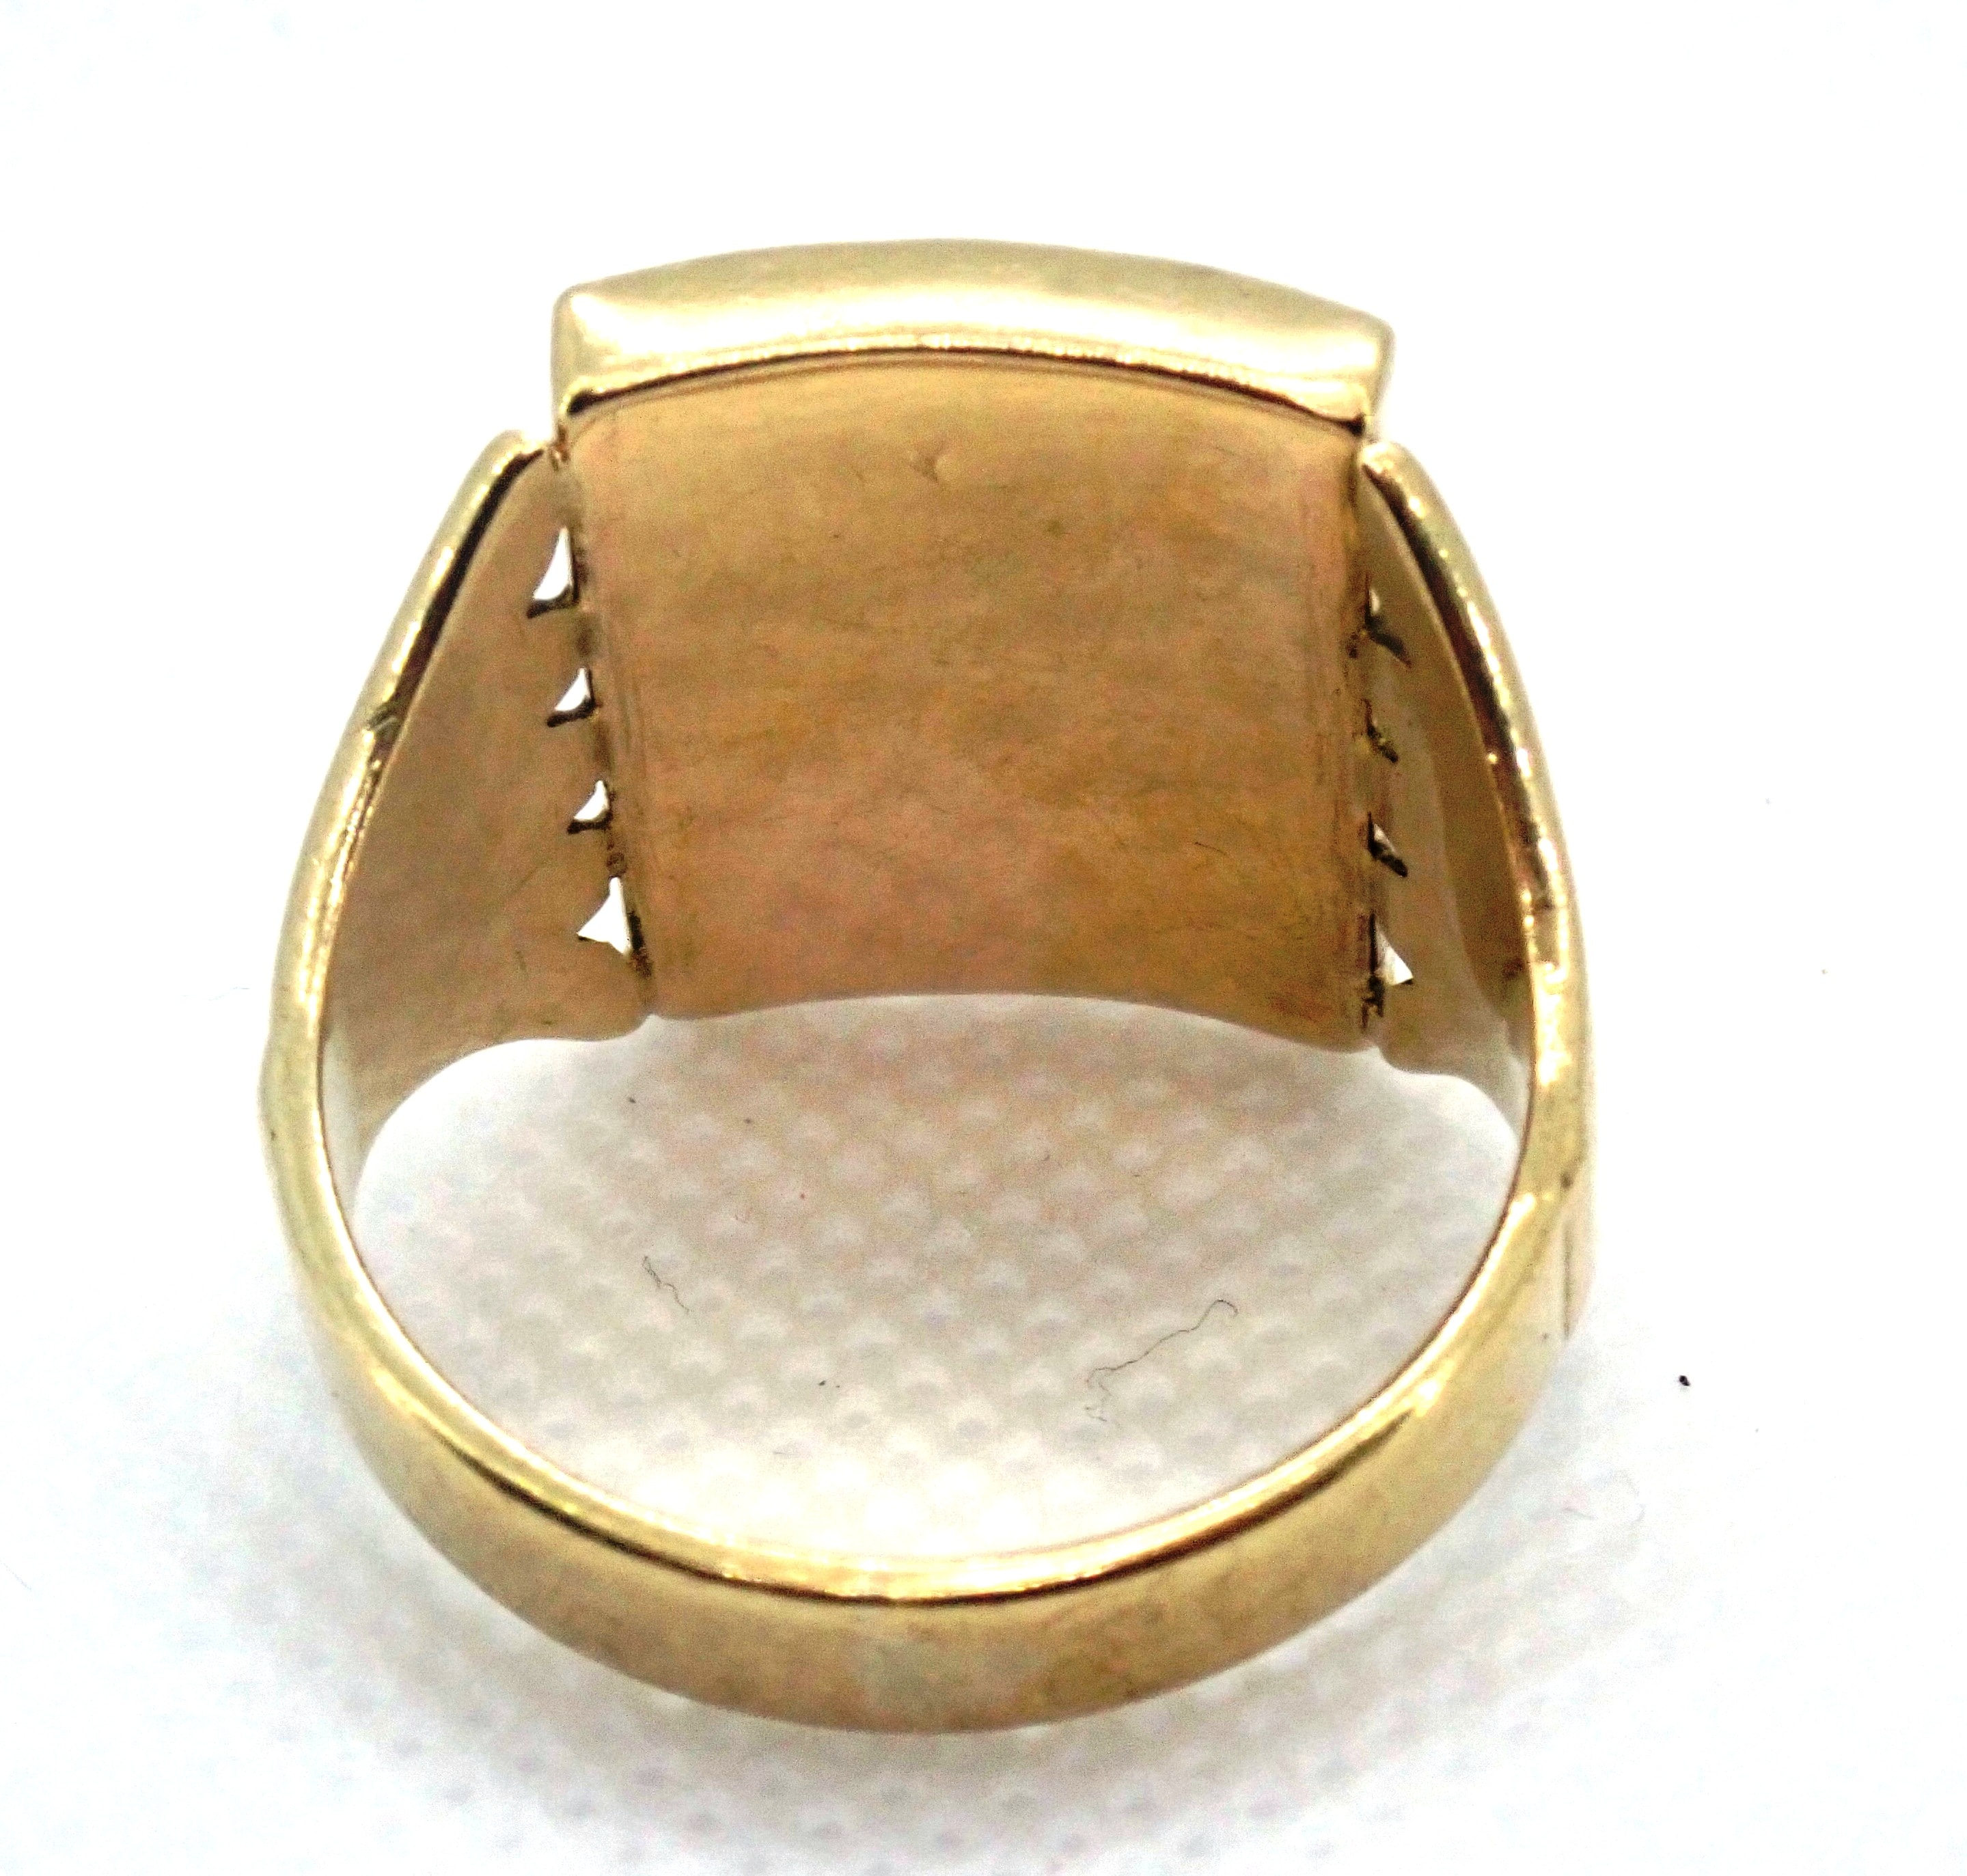 AZZ00695 - Beautiful!! Vintage Square Onyx 9 carat Gold Signet Ring - Size S1/2 - 5.5gms #011